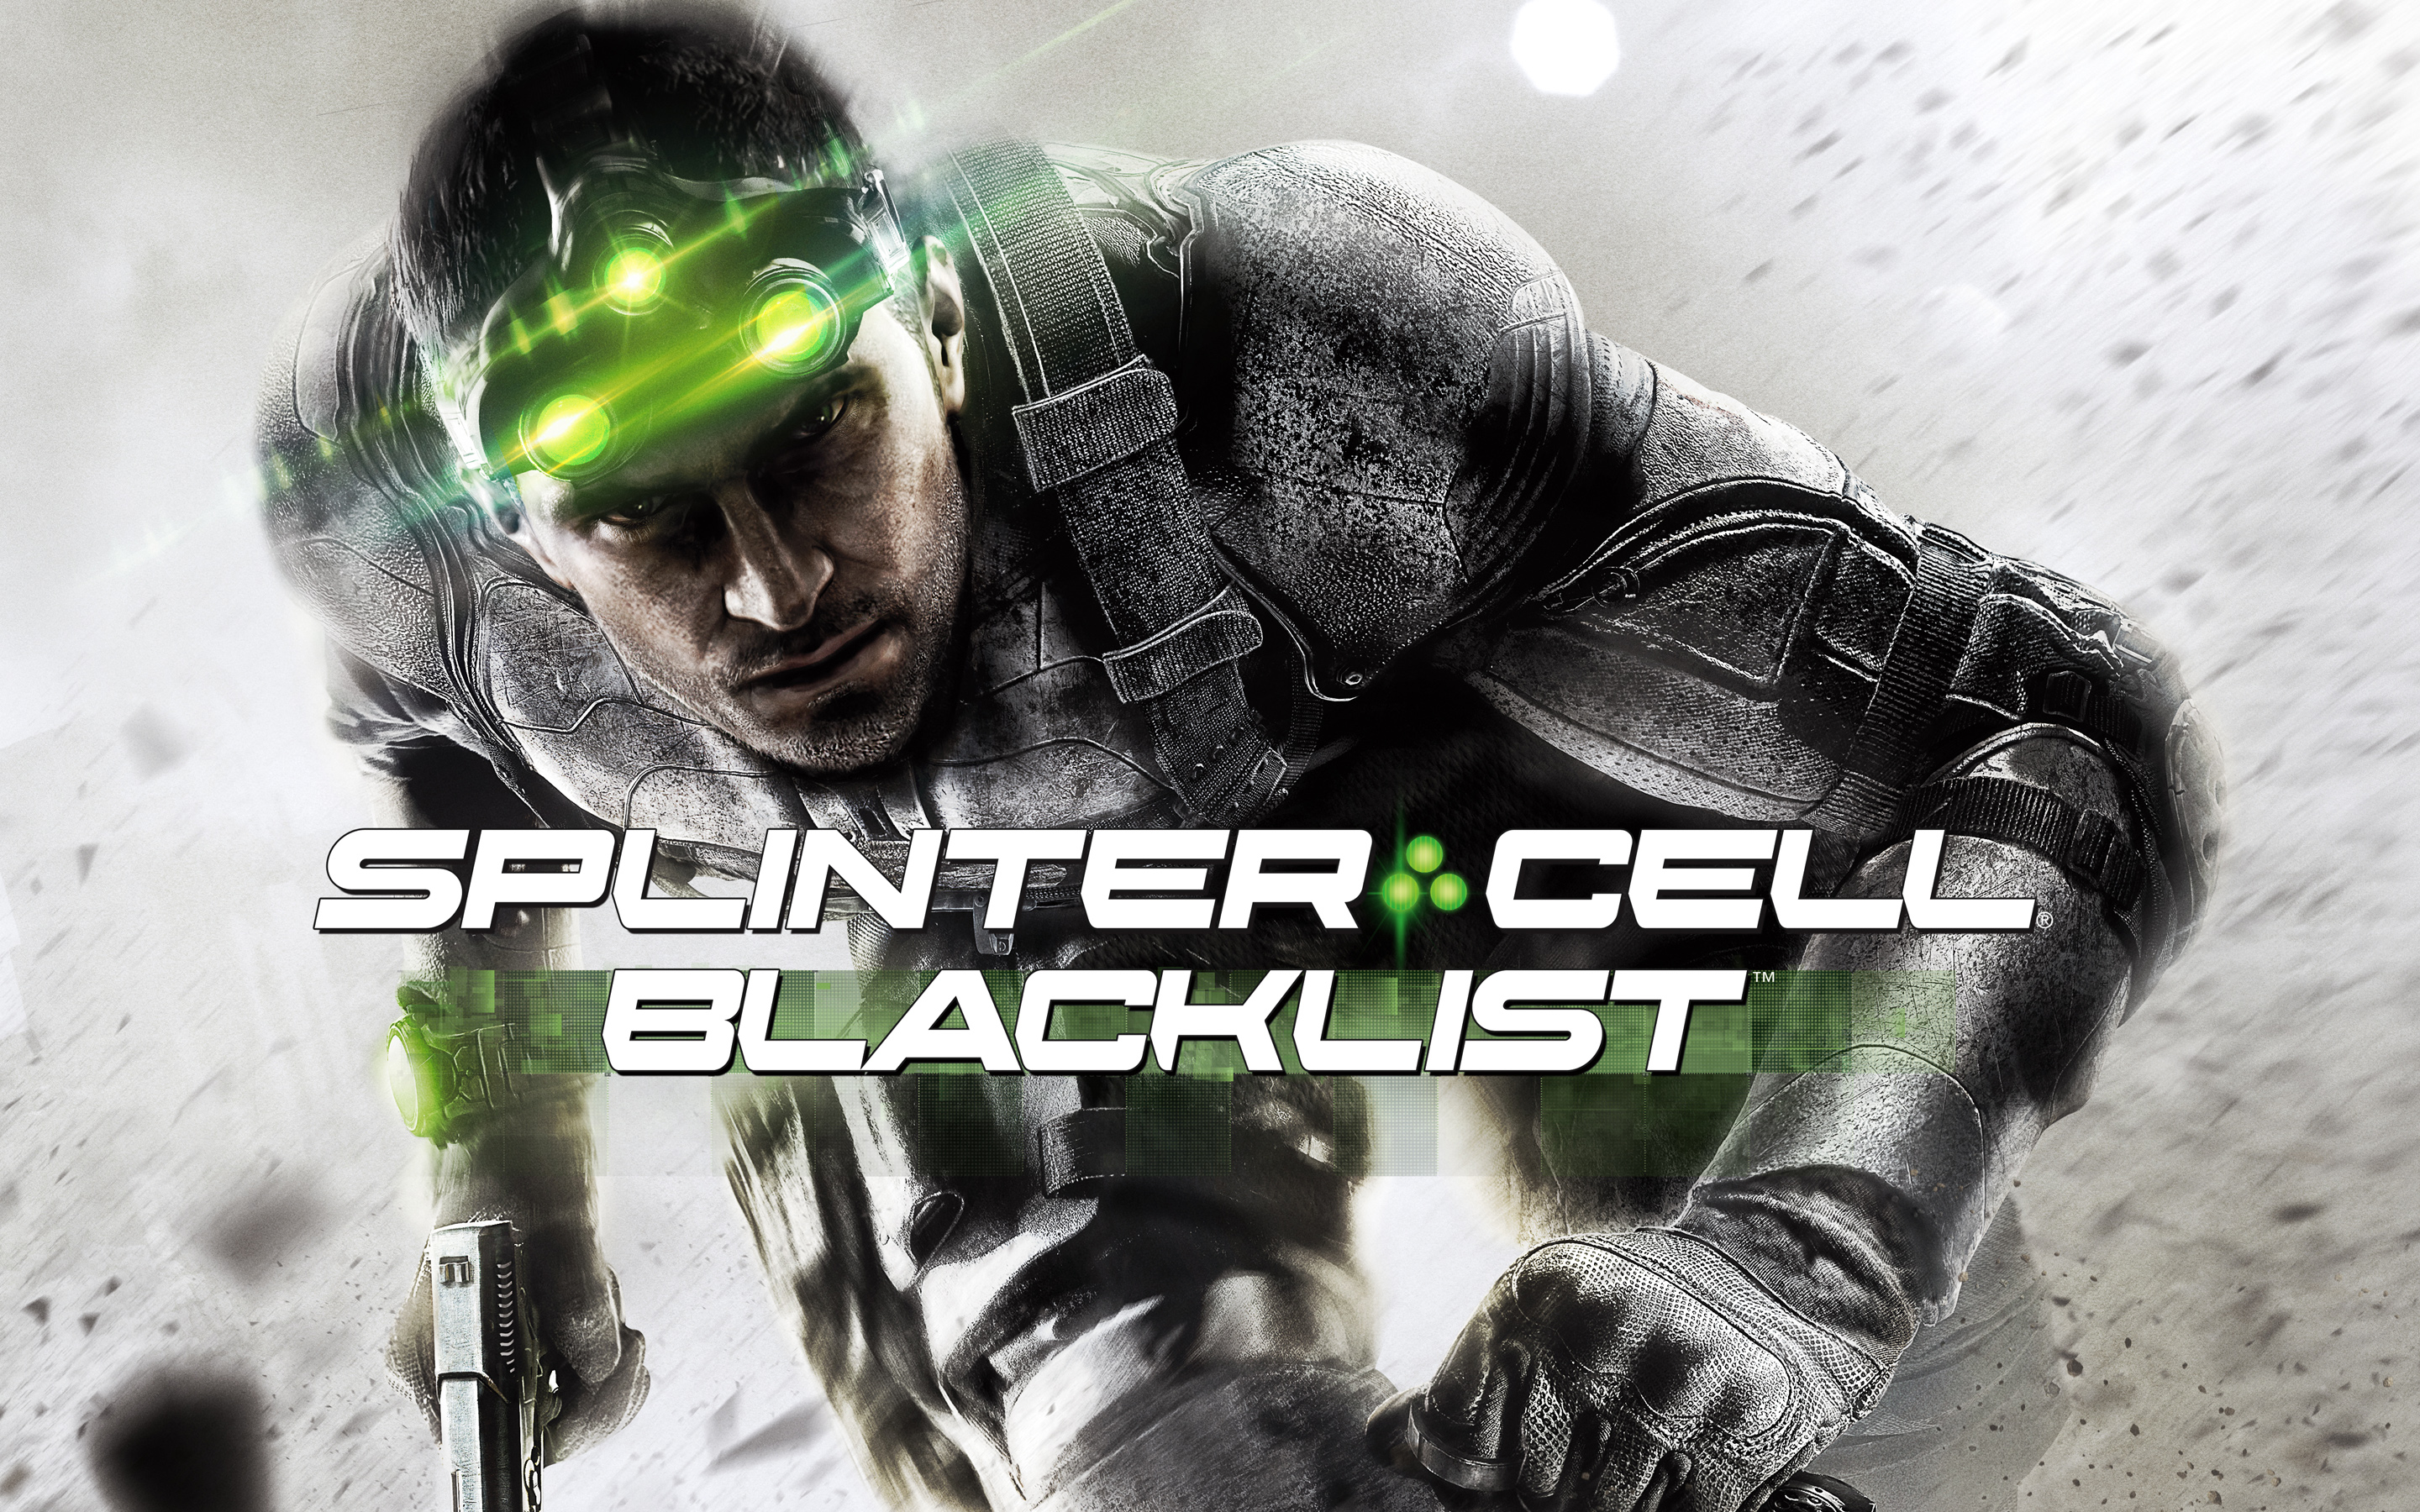 Splinter Cell Blacklist 2013 Game 706.35 Kb